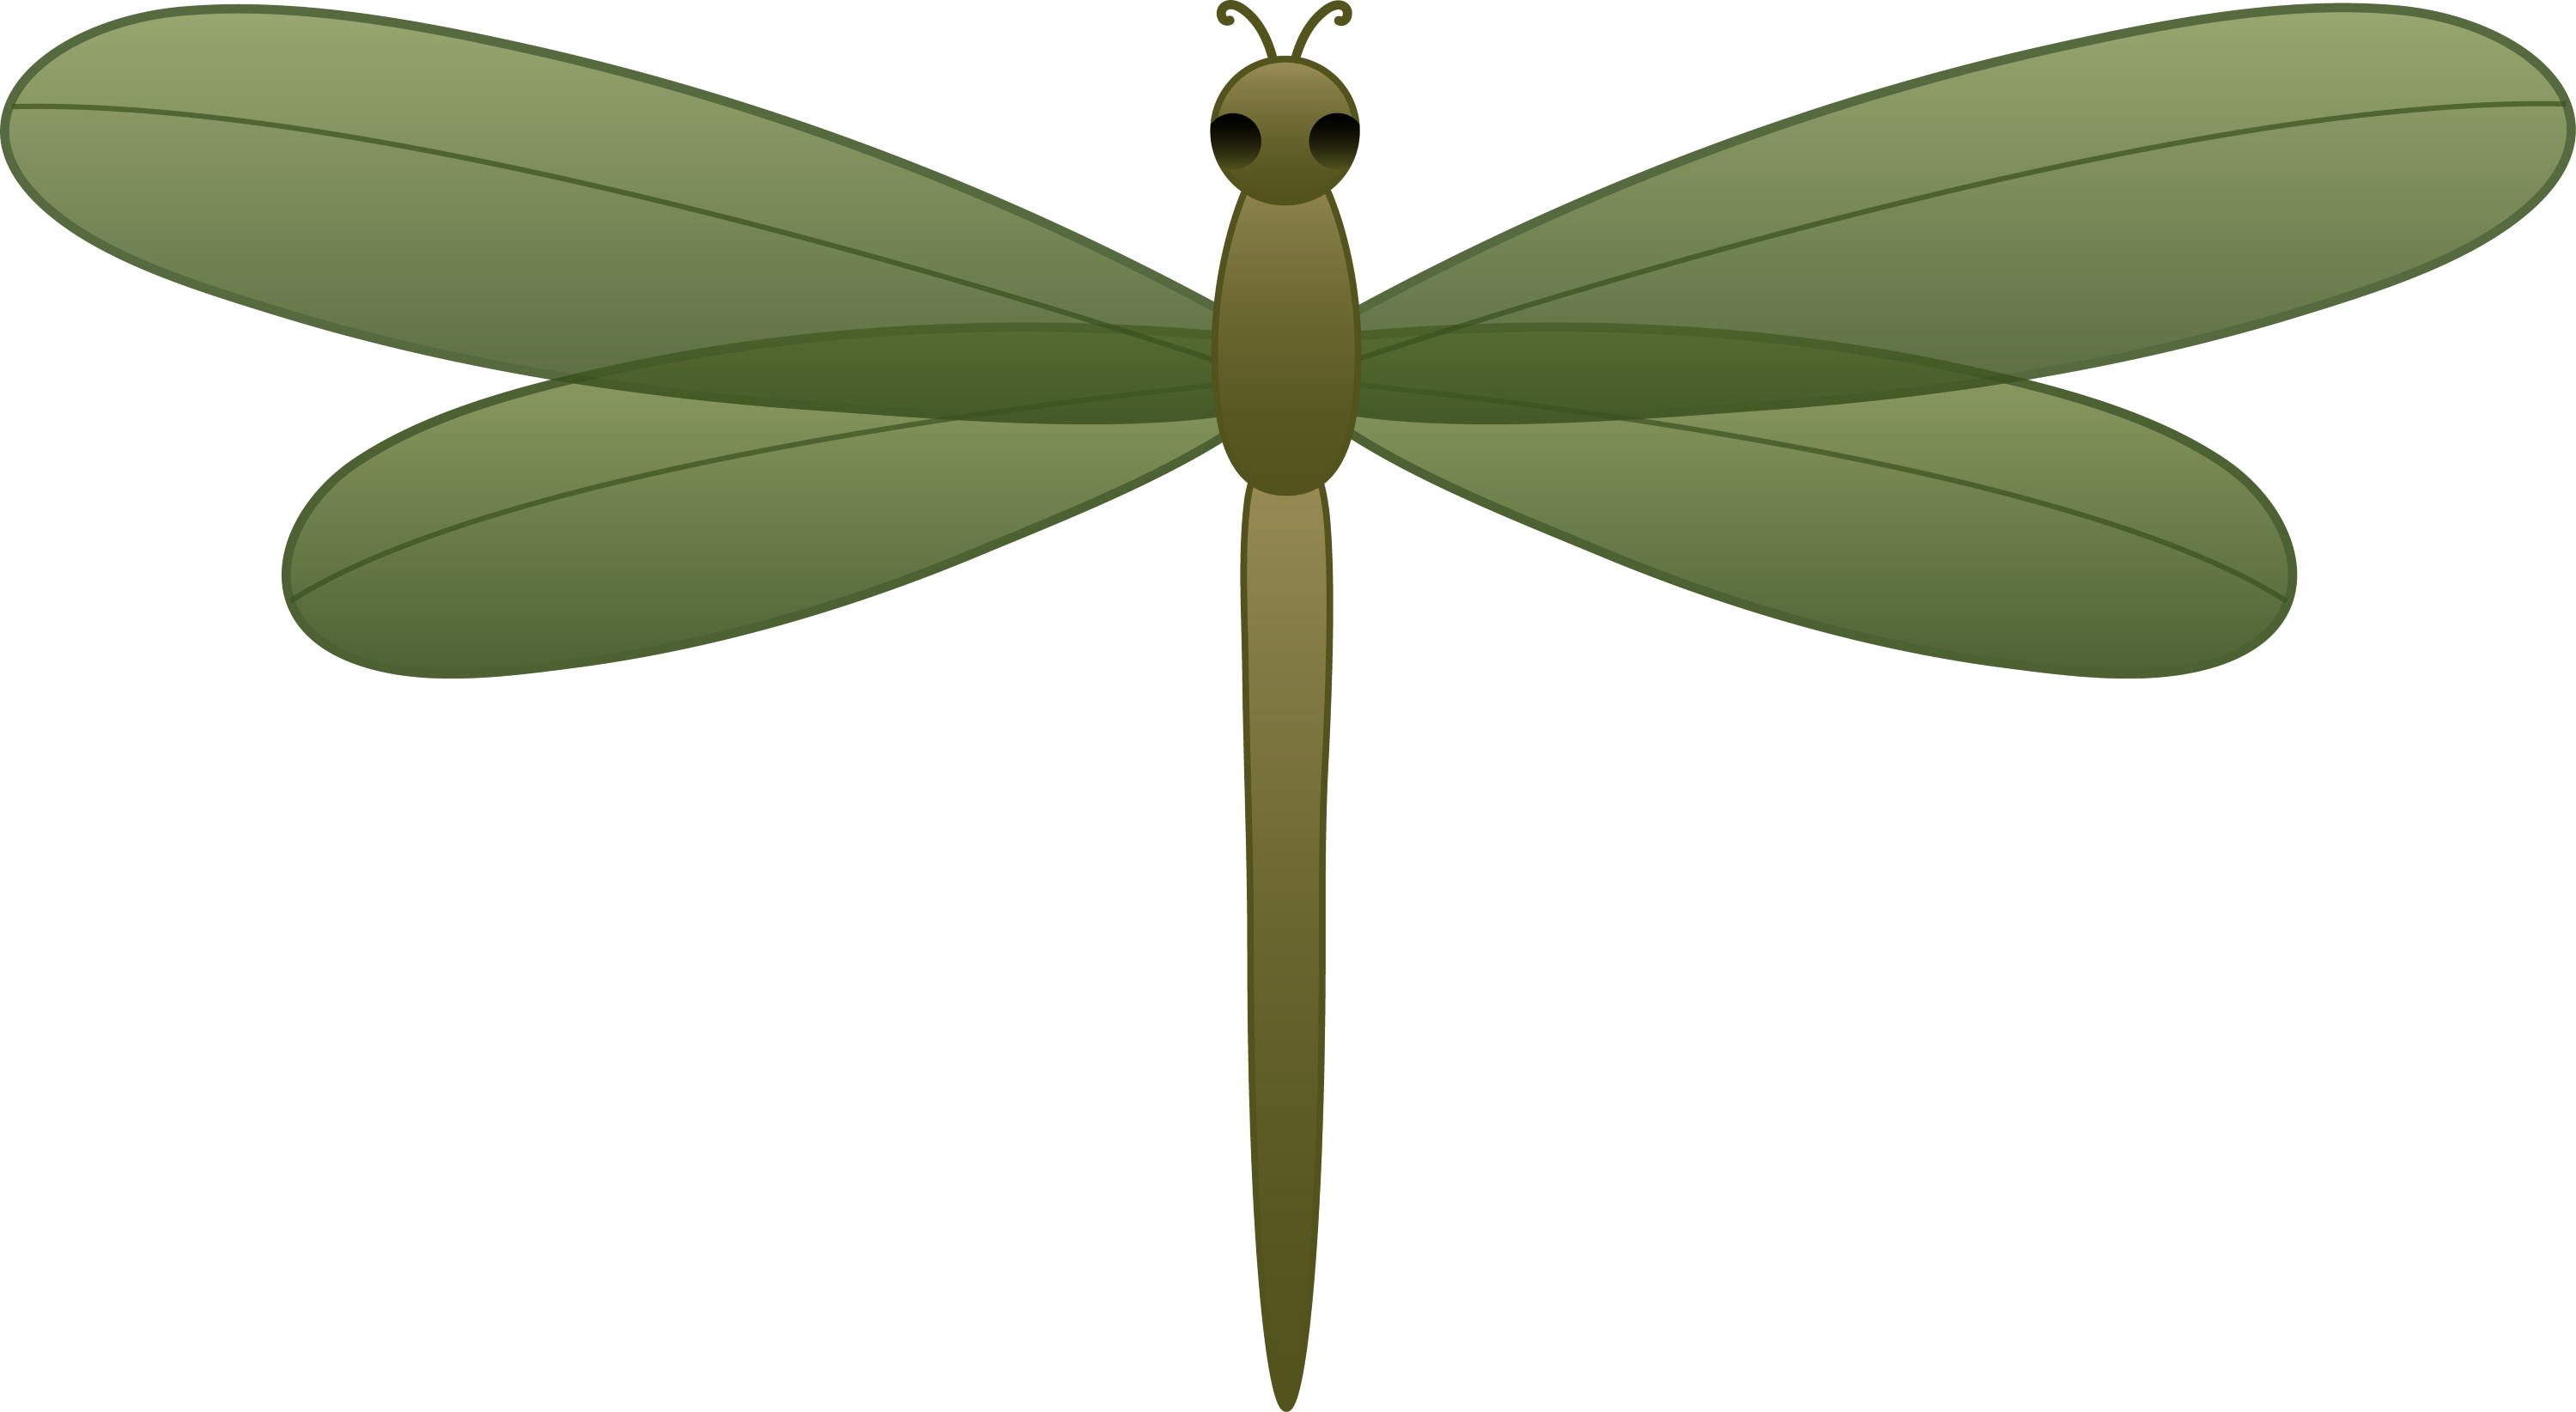 Green Dragonfly - Free Clip Art